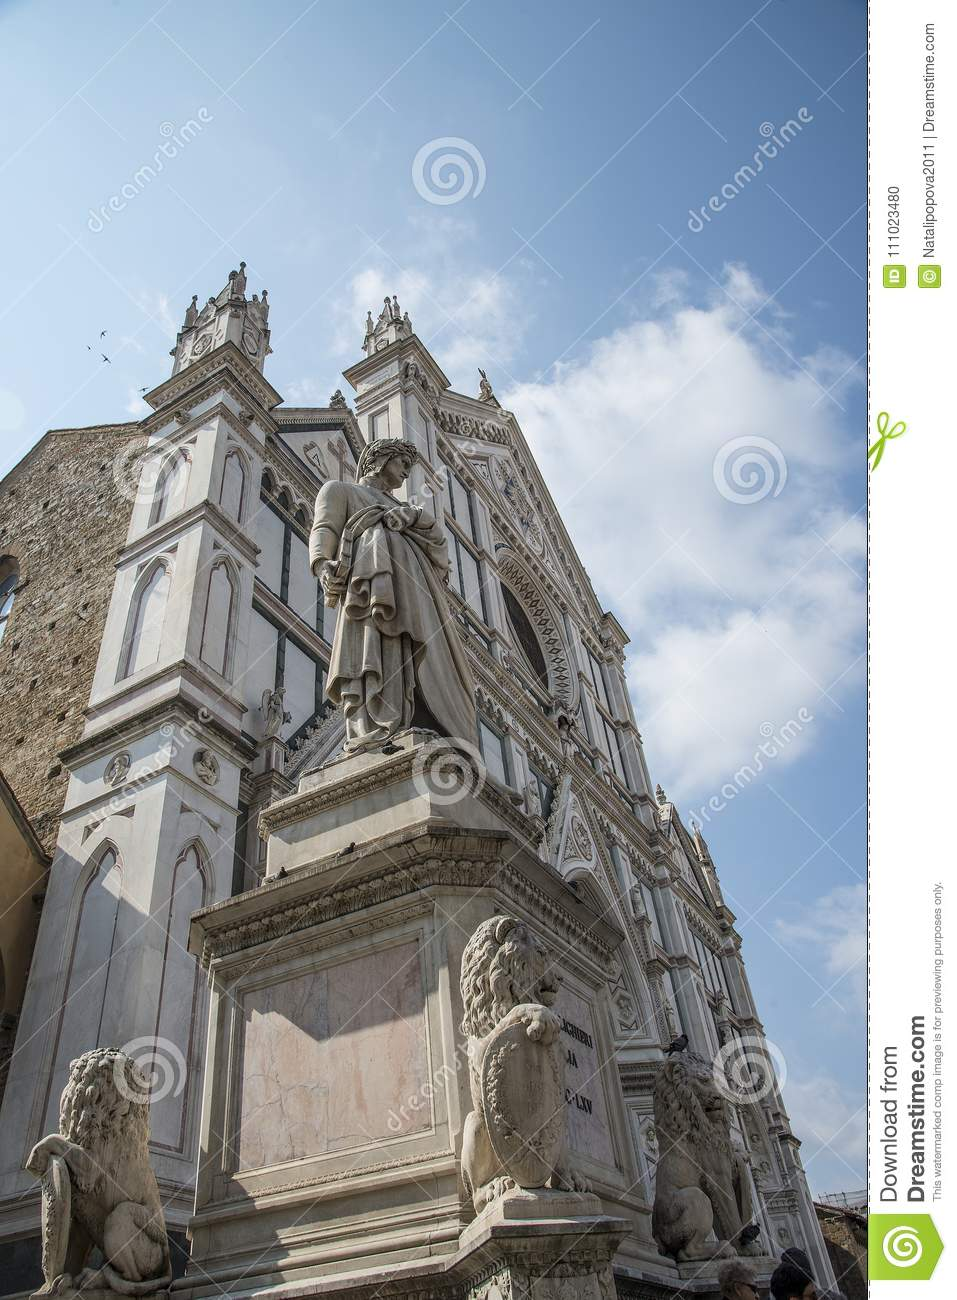 The Basilica di Santa Croce Basilica of the Holy Cross on square of the same name in Florence, Tuscany, Italy. Florence